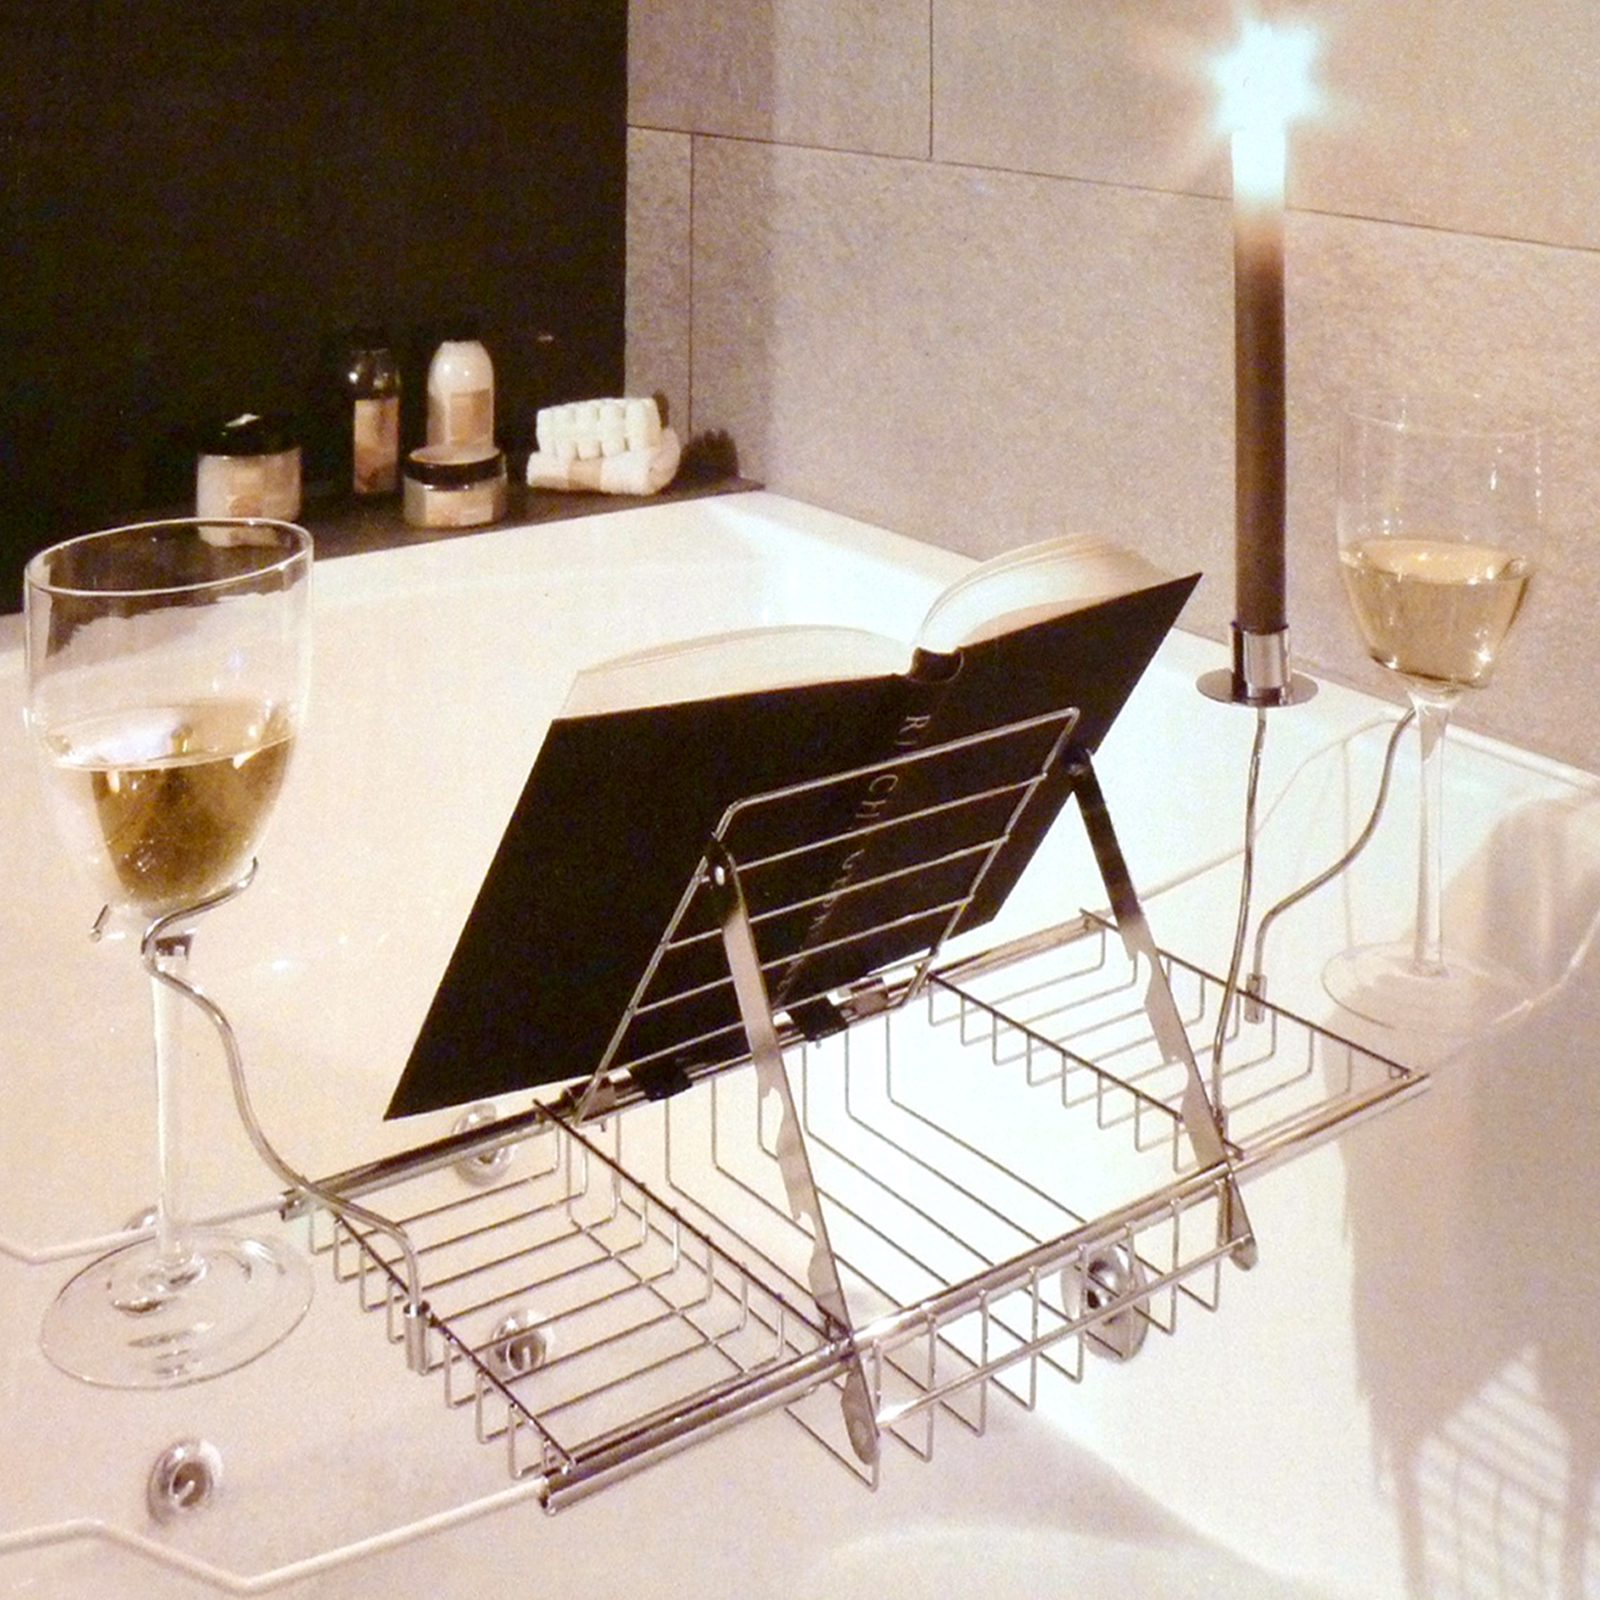 Book Tray For Bathtub - Bathtub Ideas